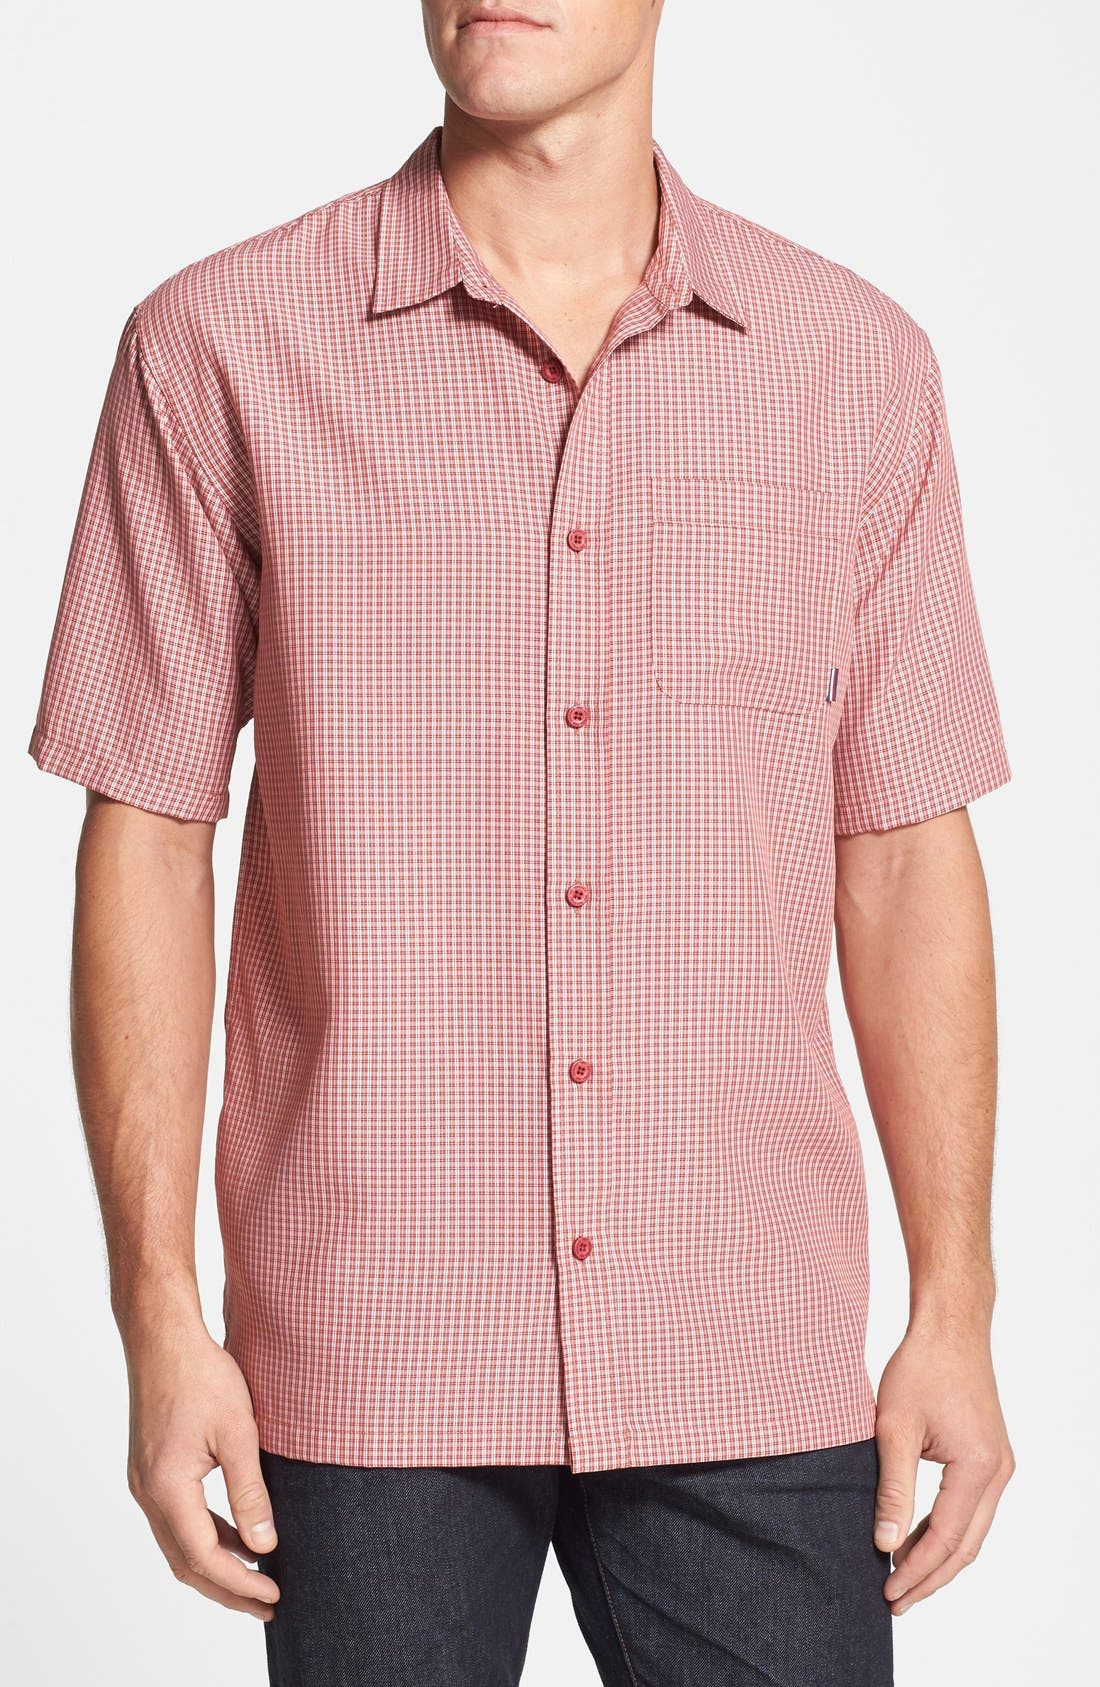 Alternate Image 1 Selected - Jack O'Neill 'Ford' Standard Fit Short Sleeve Woven Sport Shirt